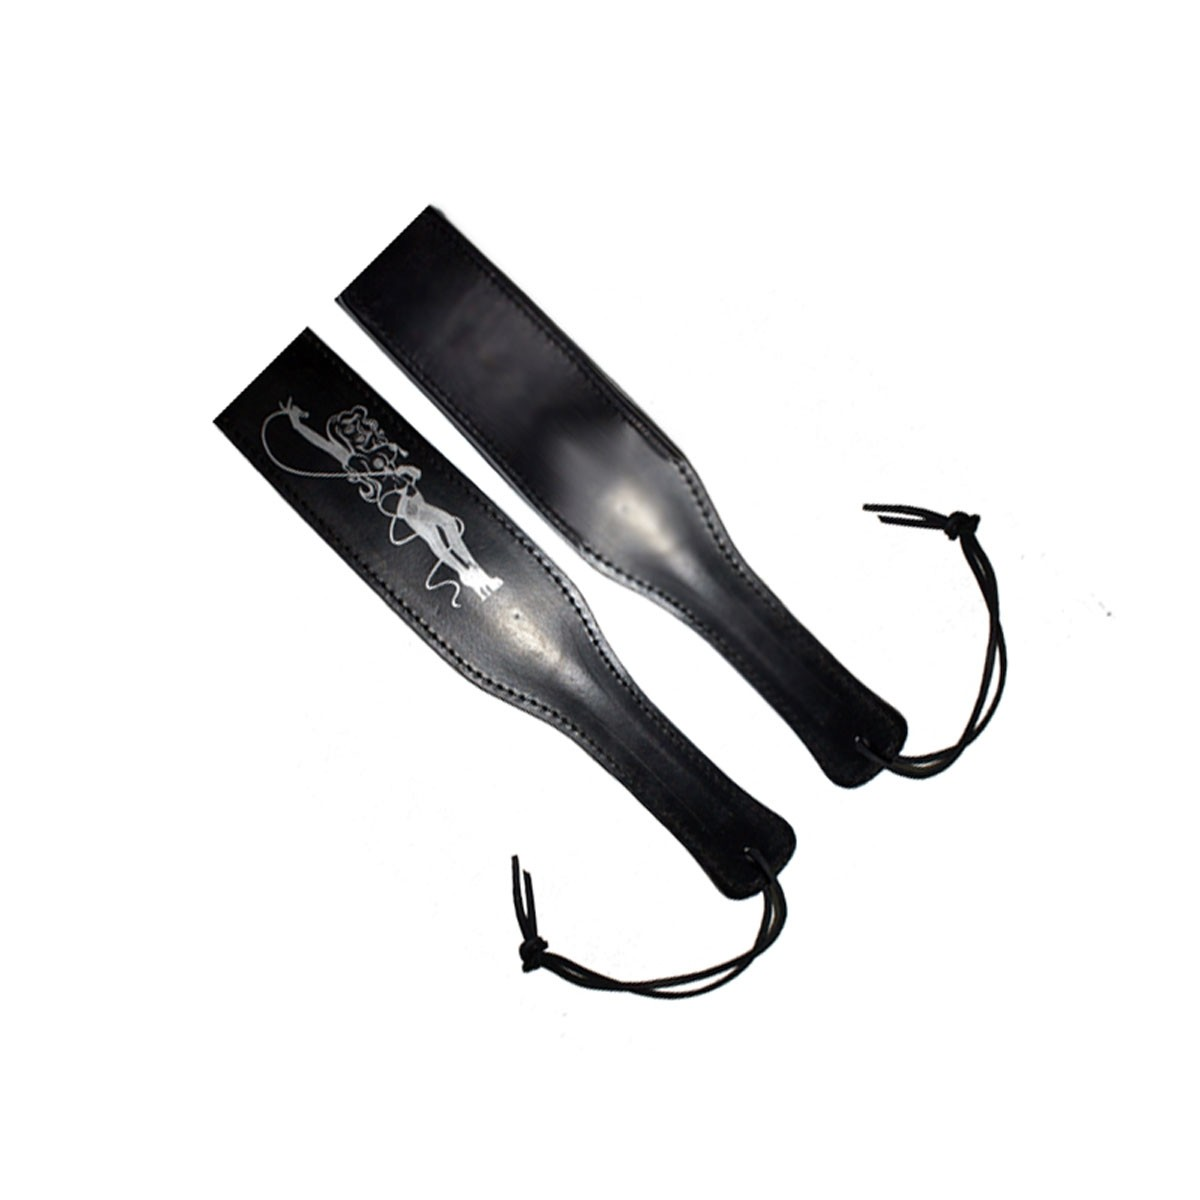 HMB-602B FREE SHIPPING LEATHER PADDLE BULLWHIP BLACK BDSM WHIP STYLE SPANKS